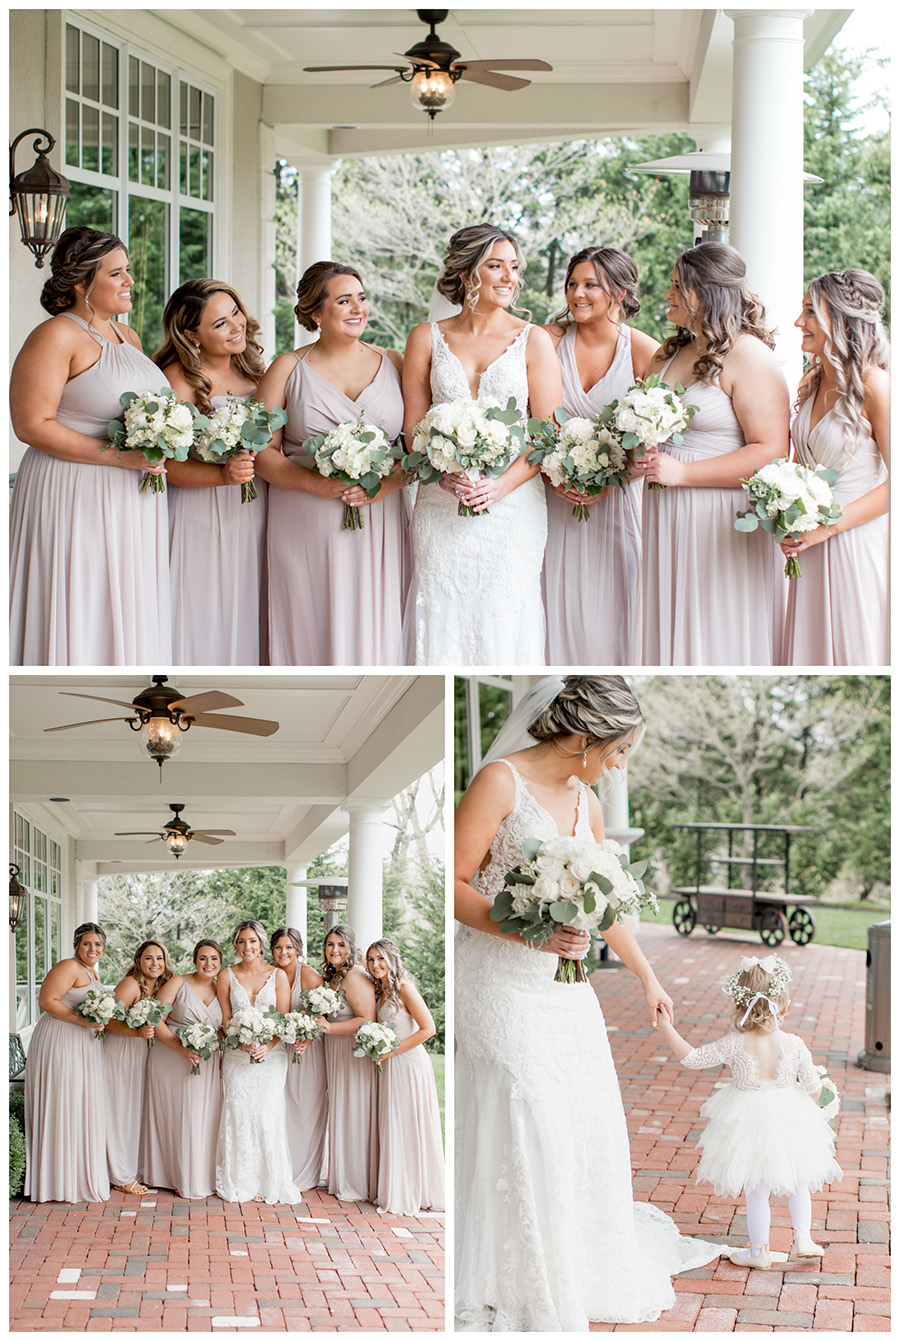 bride and her bridesmaids in floor length, neutral biscotti colored bridesmaid dresses and white flowers